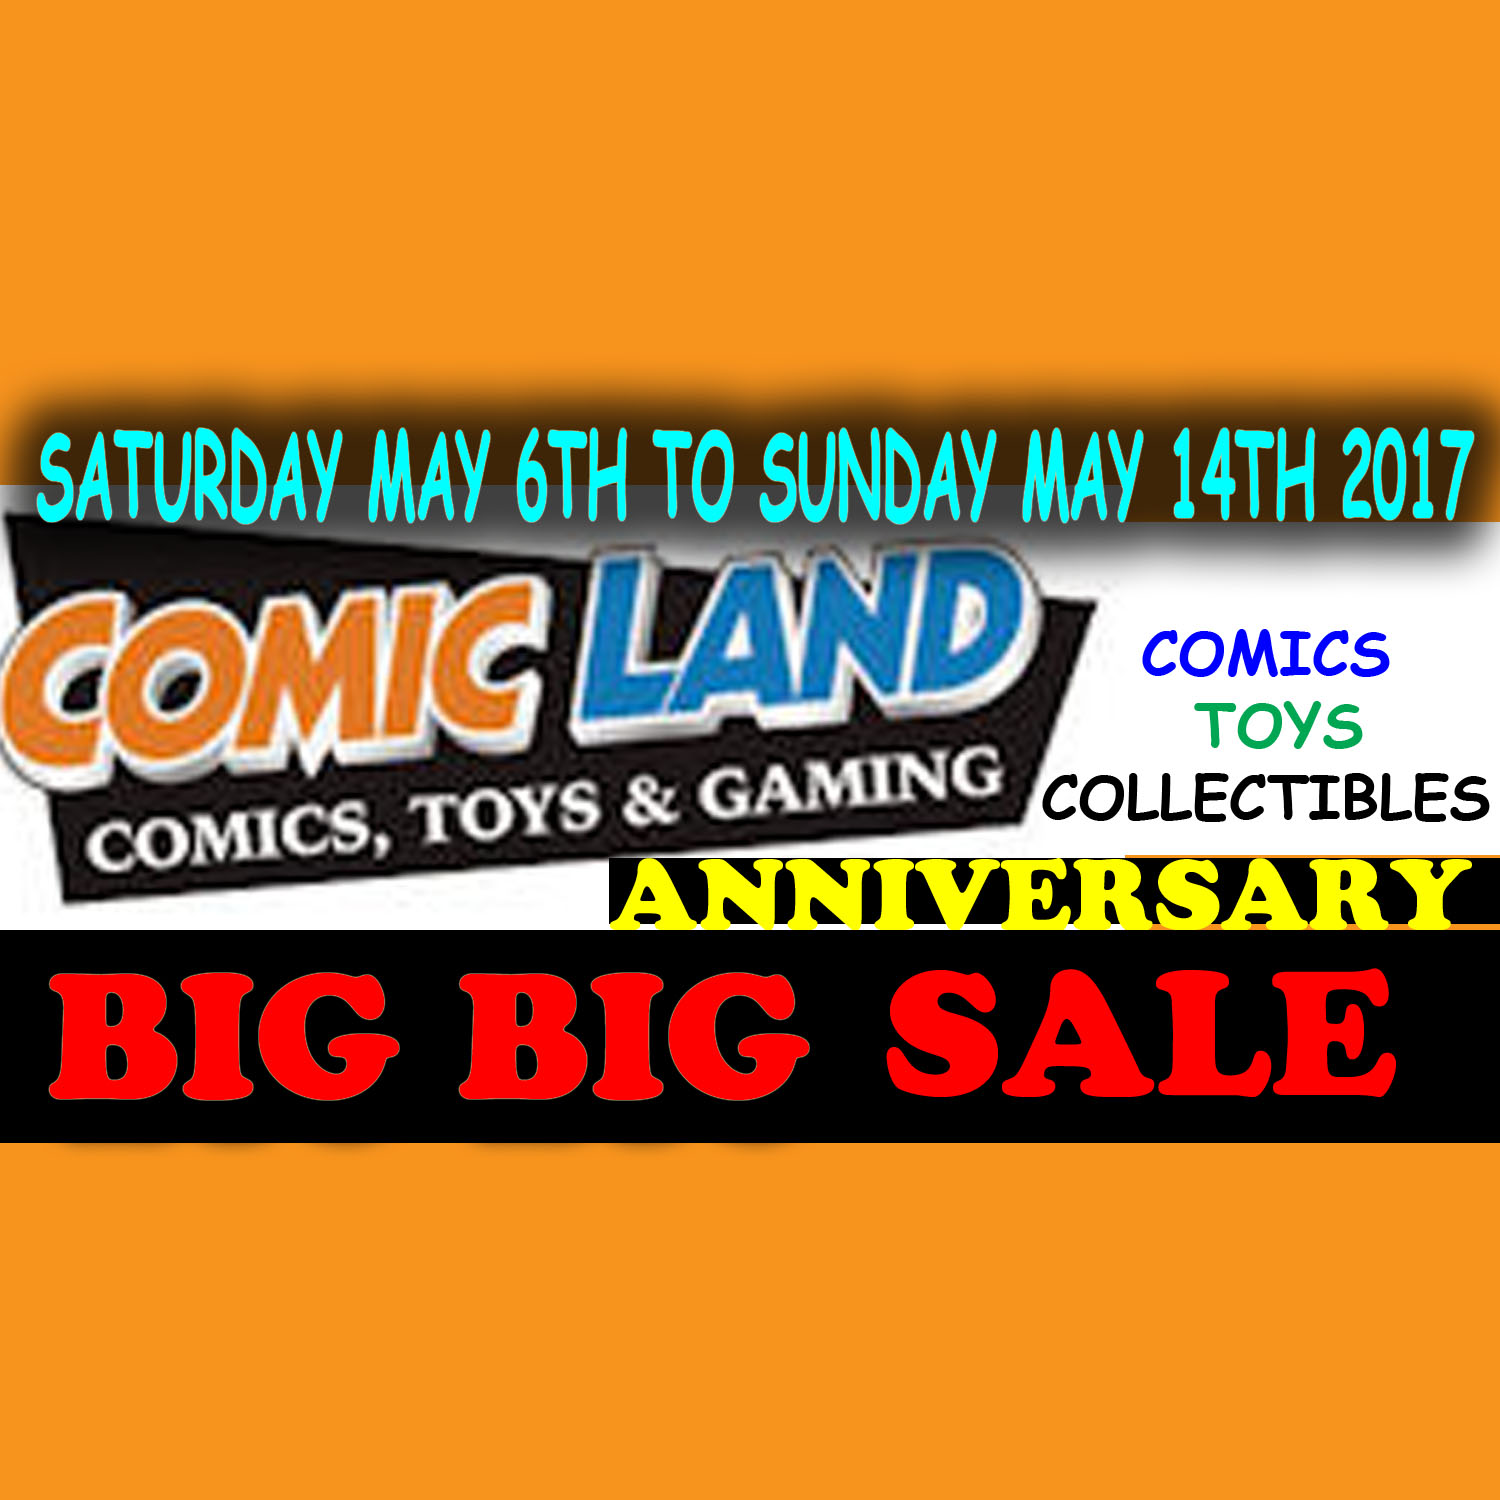 Comic Land Anniversary Sale 2017 EXTENDED - May 6th to 14th